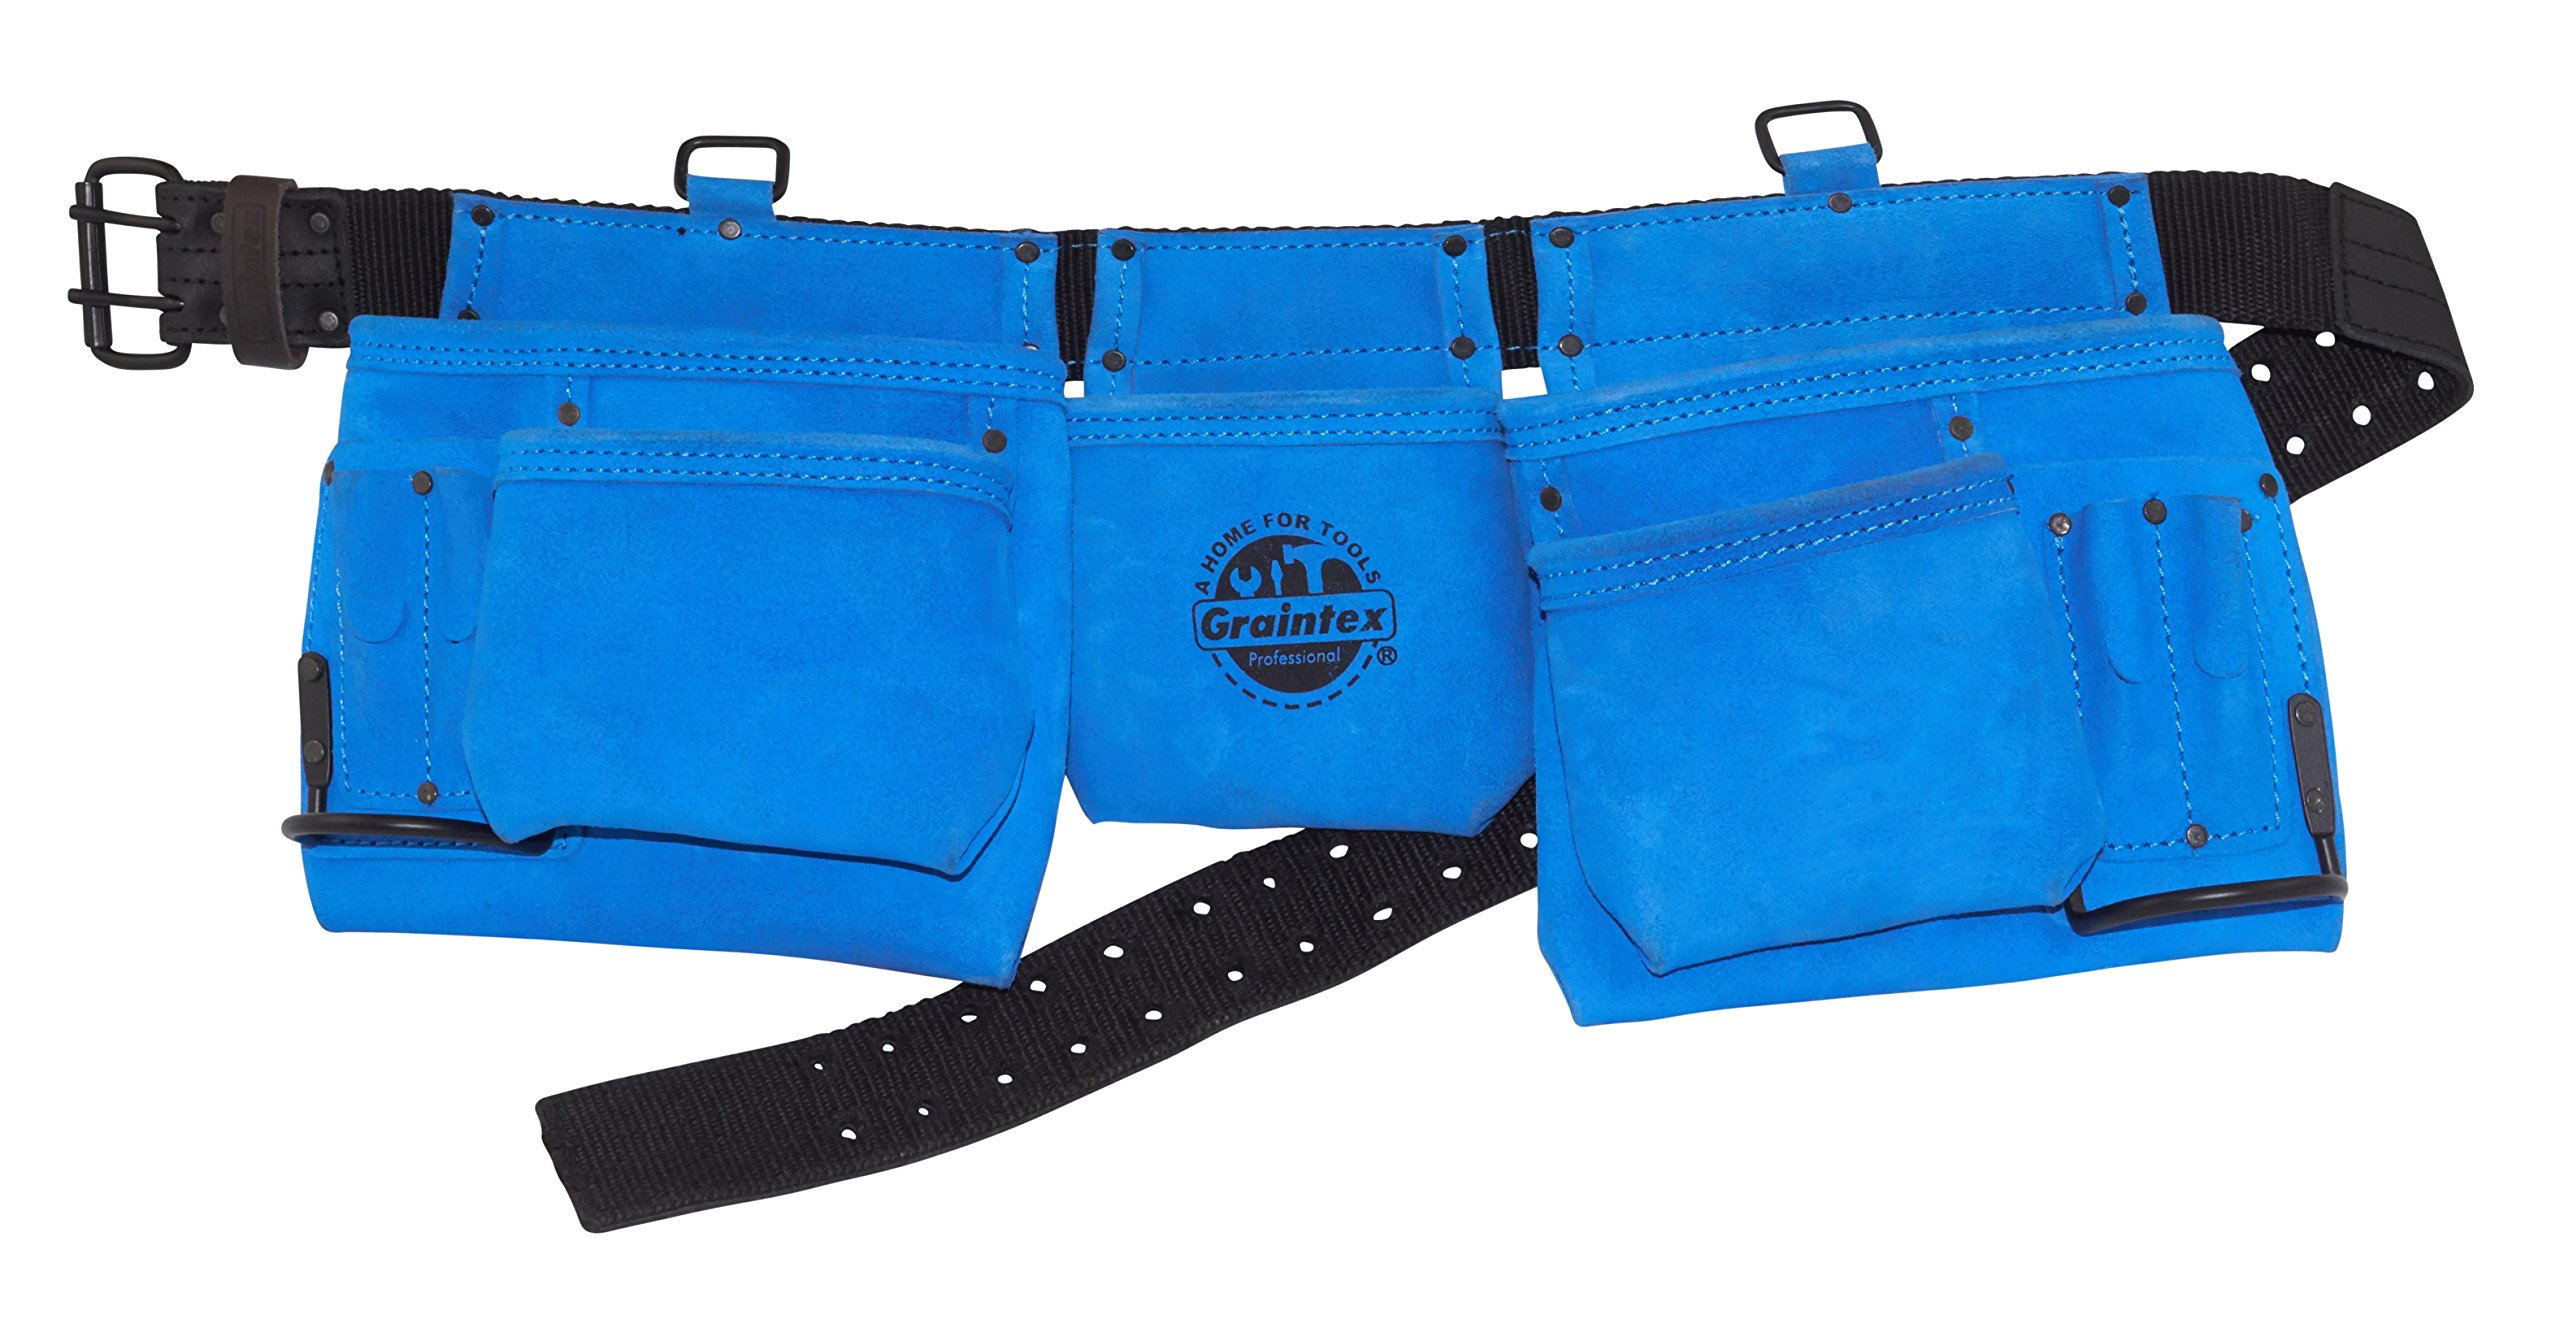 Graintex DS2131 11 Pocket Professional Blue Suede Leather Work Apron with 2'' Leather/Webbing Belt Double Needle Roller Buckle by Graintex